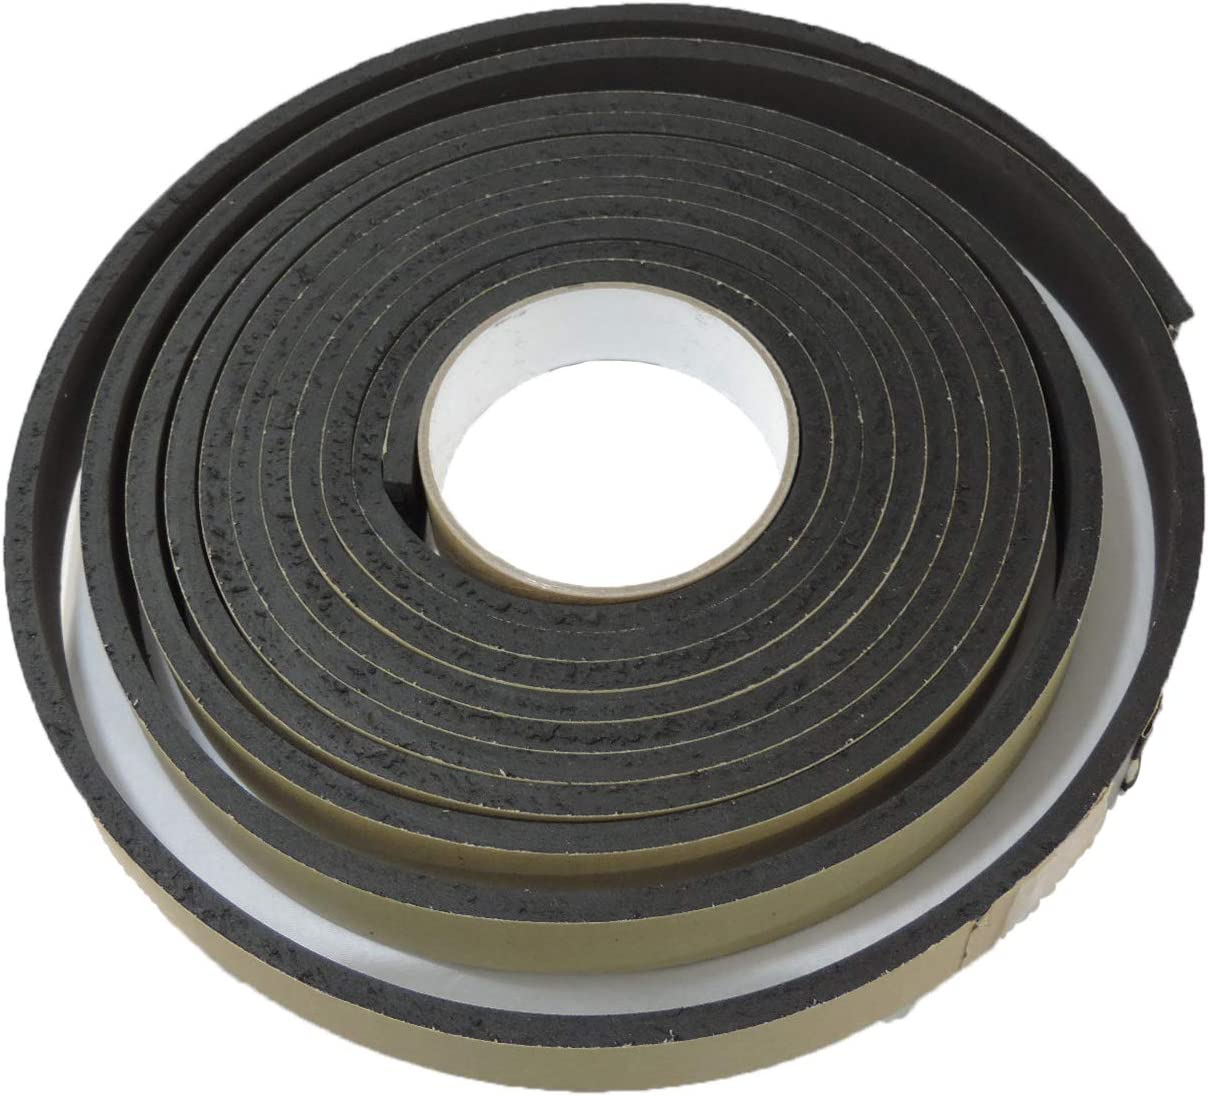 16 FT Hat Inventory cleanup selling sale Tape Roll trust Size Reducer